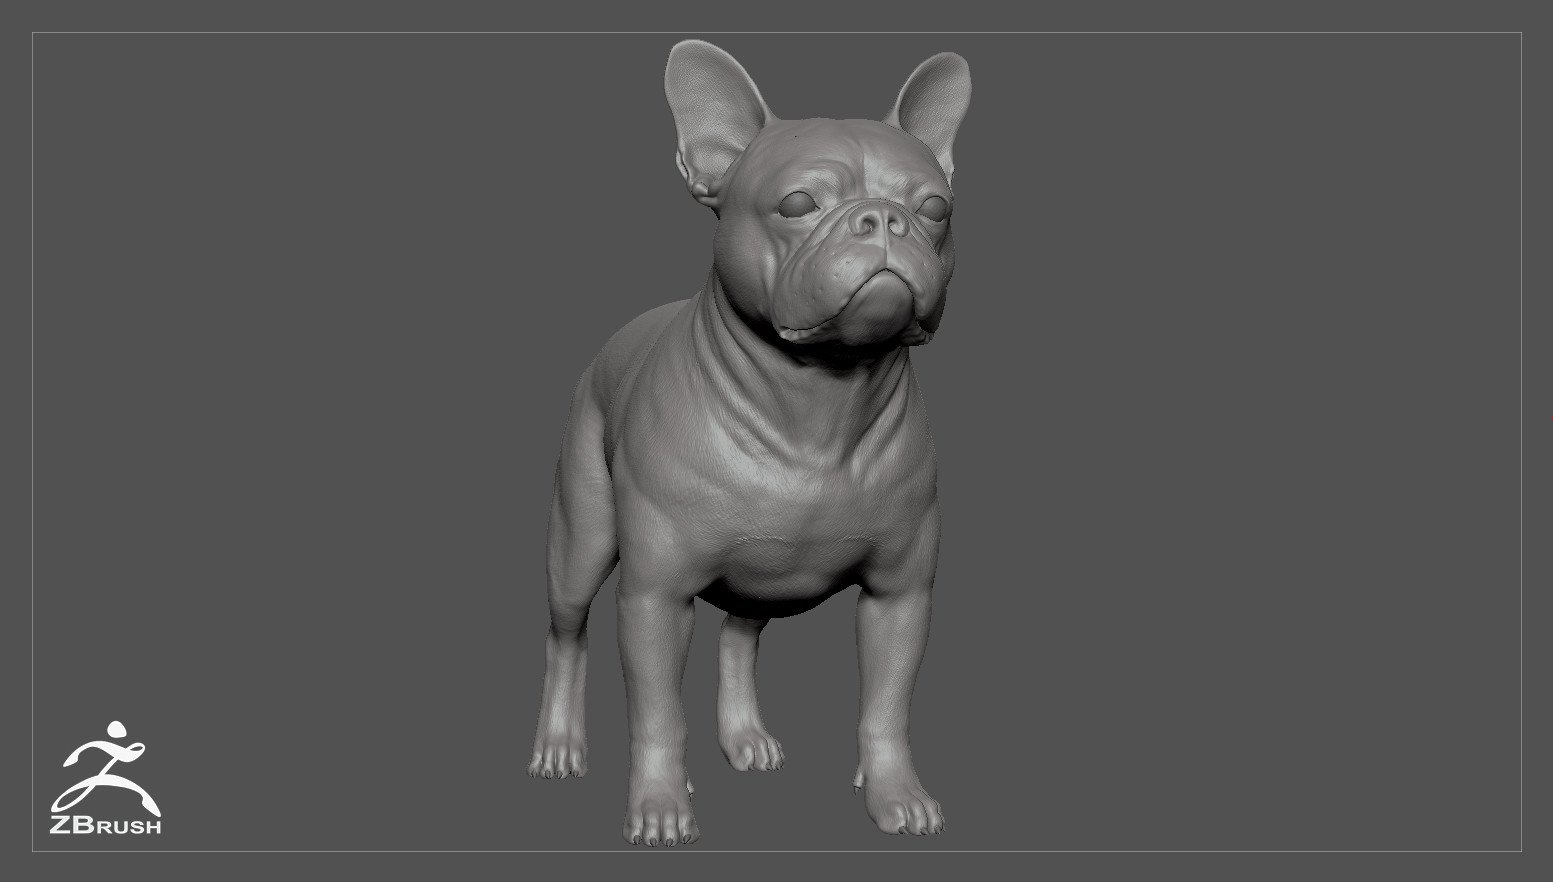 Frenchbulldog by alexlashko zbrush 02